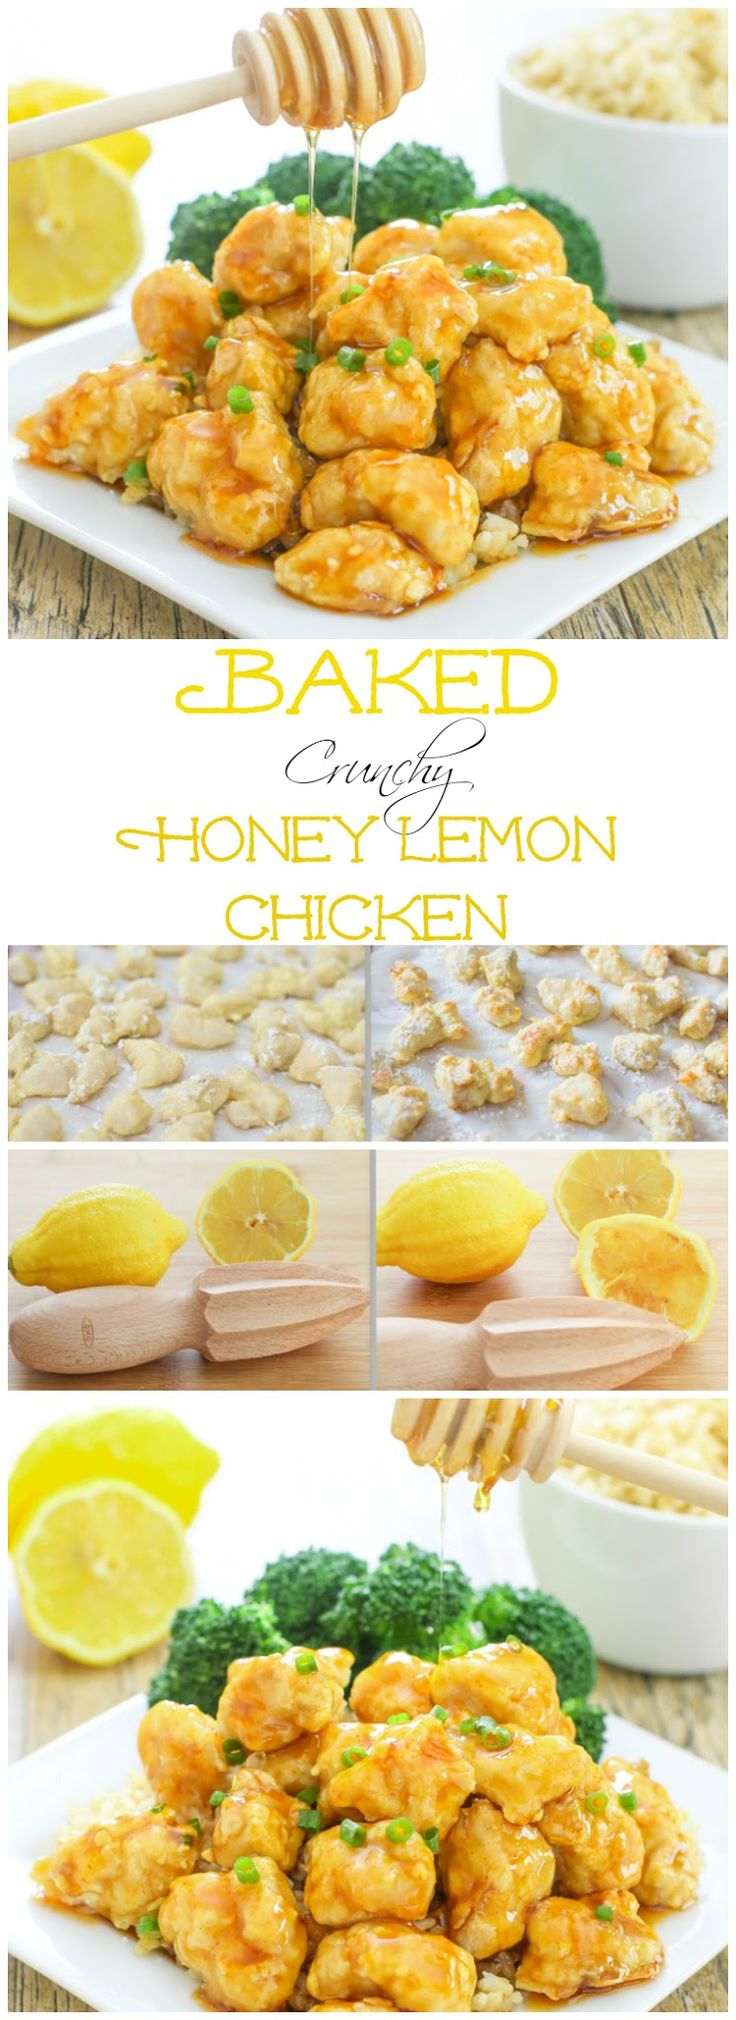 Baked Crunchy Honey Lemon Chicken. No breadcrumbs and gluten-free!